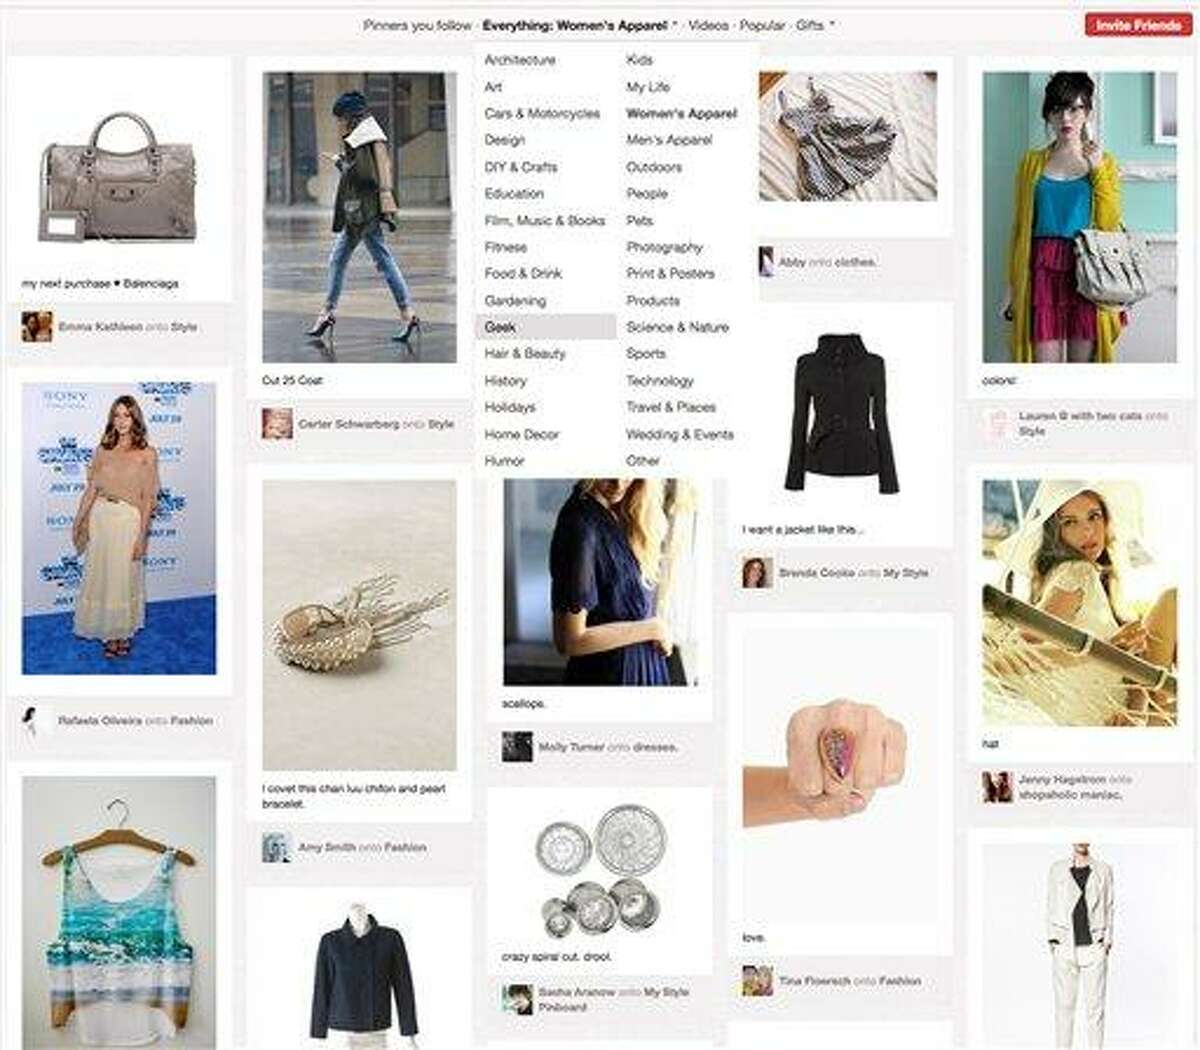 This screen shot shows a page of women's products from Pinterest. The site's popularity has exploded in recent weeks. In a twist, though, the surge is driven not by the usual geek crowd of young men from New York and San Francisco, but by women who live in the Midwest and the central U.S. They use the sleek, photo-heavy Pinterest for fashion inspiration, wedding planning and home design, or just to post photos of puppies. Associated Press